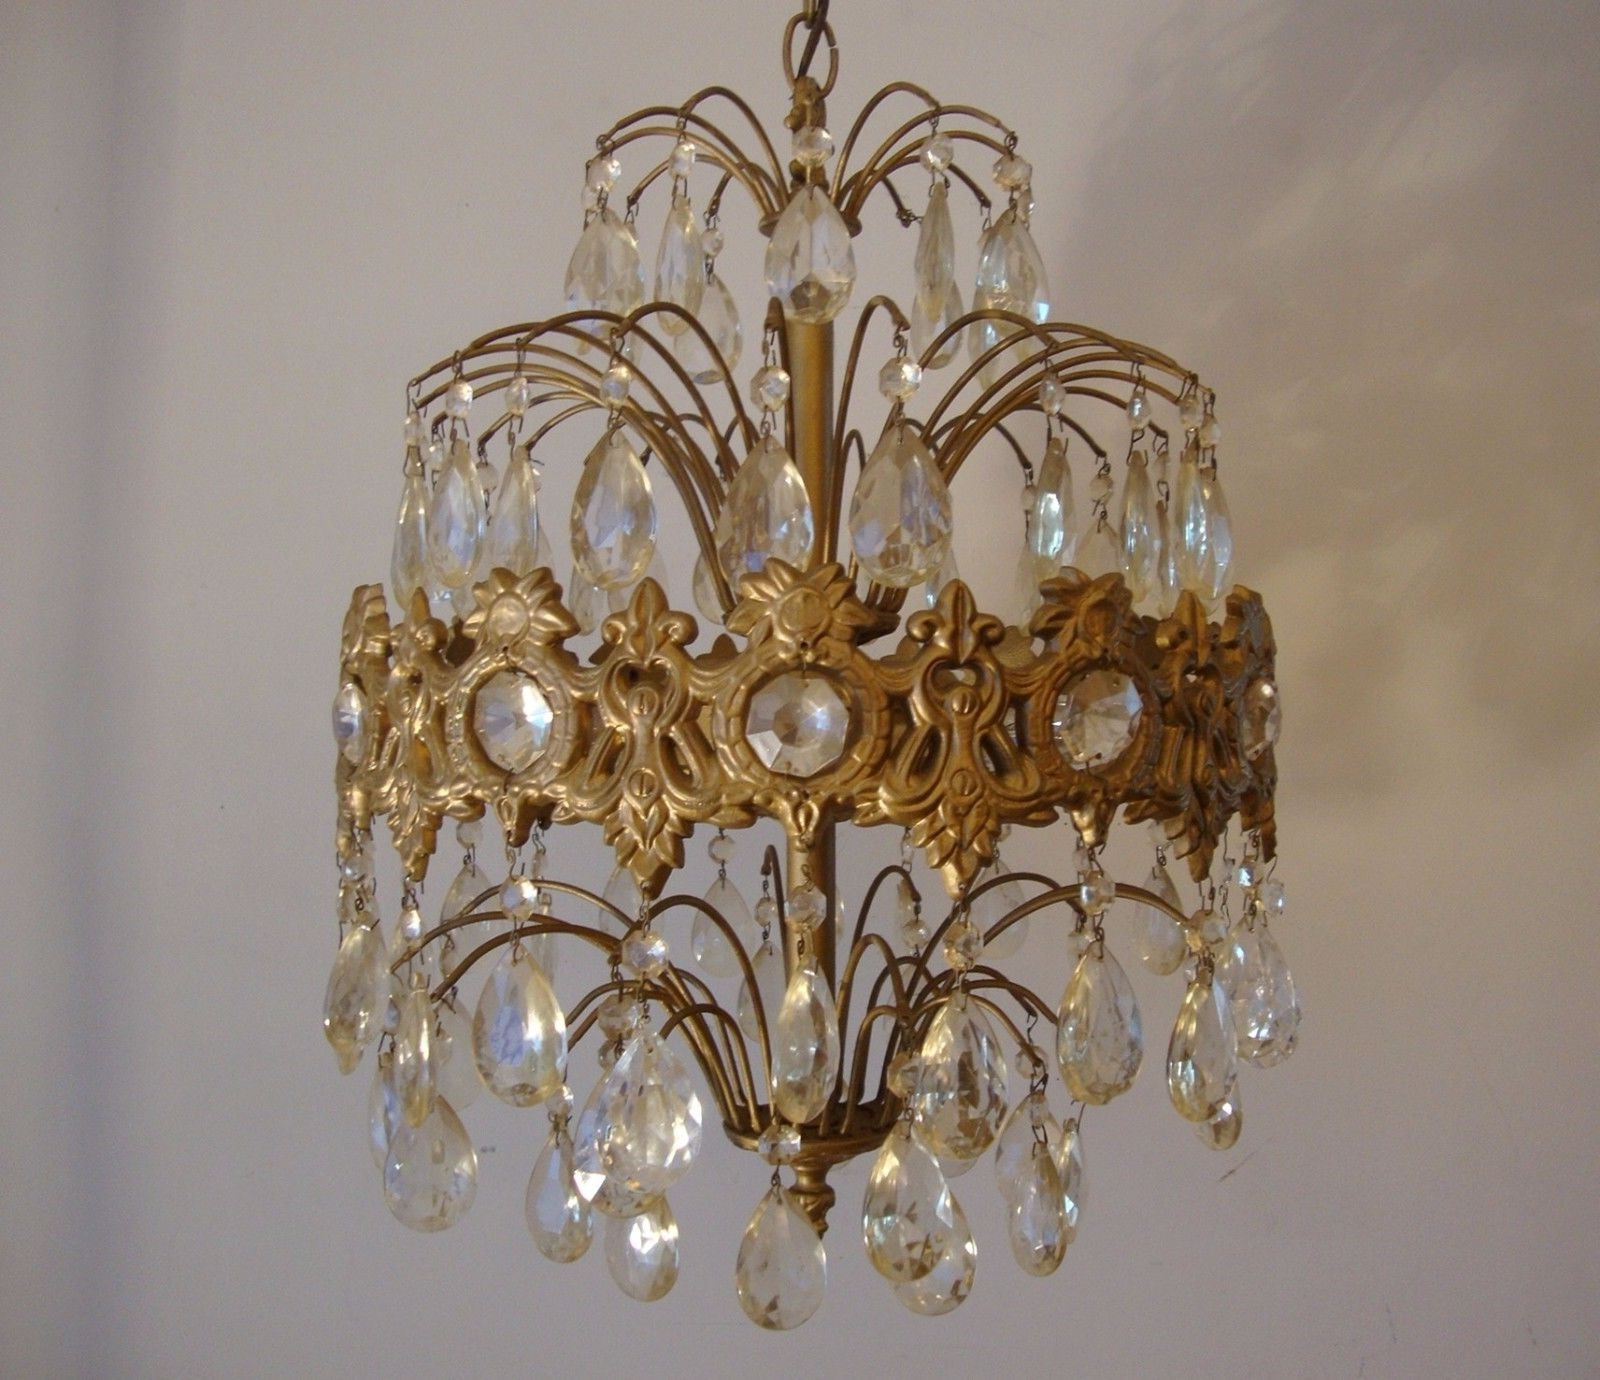 Vintage Crystal Prism Waterfall Chandelier - 6 Tier 6 Lights for Preferred Waterfall Chandeliers